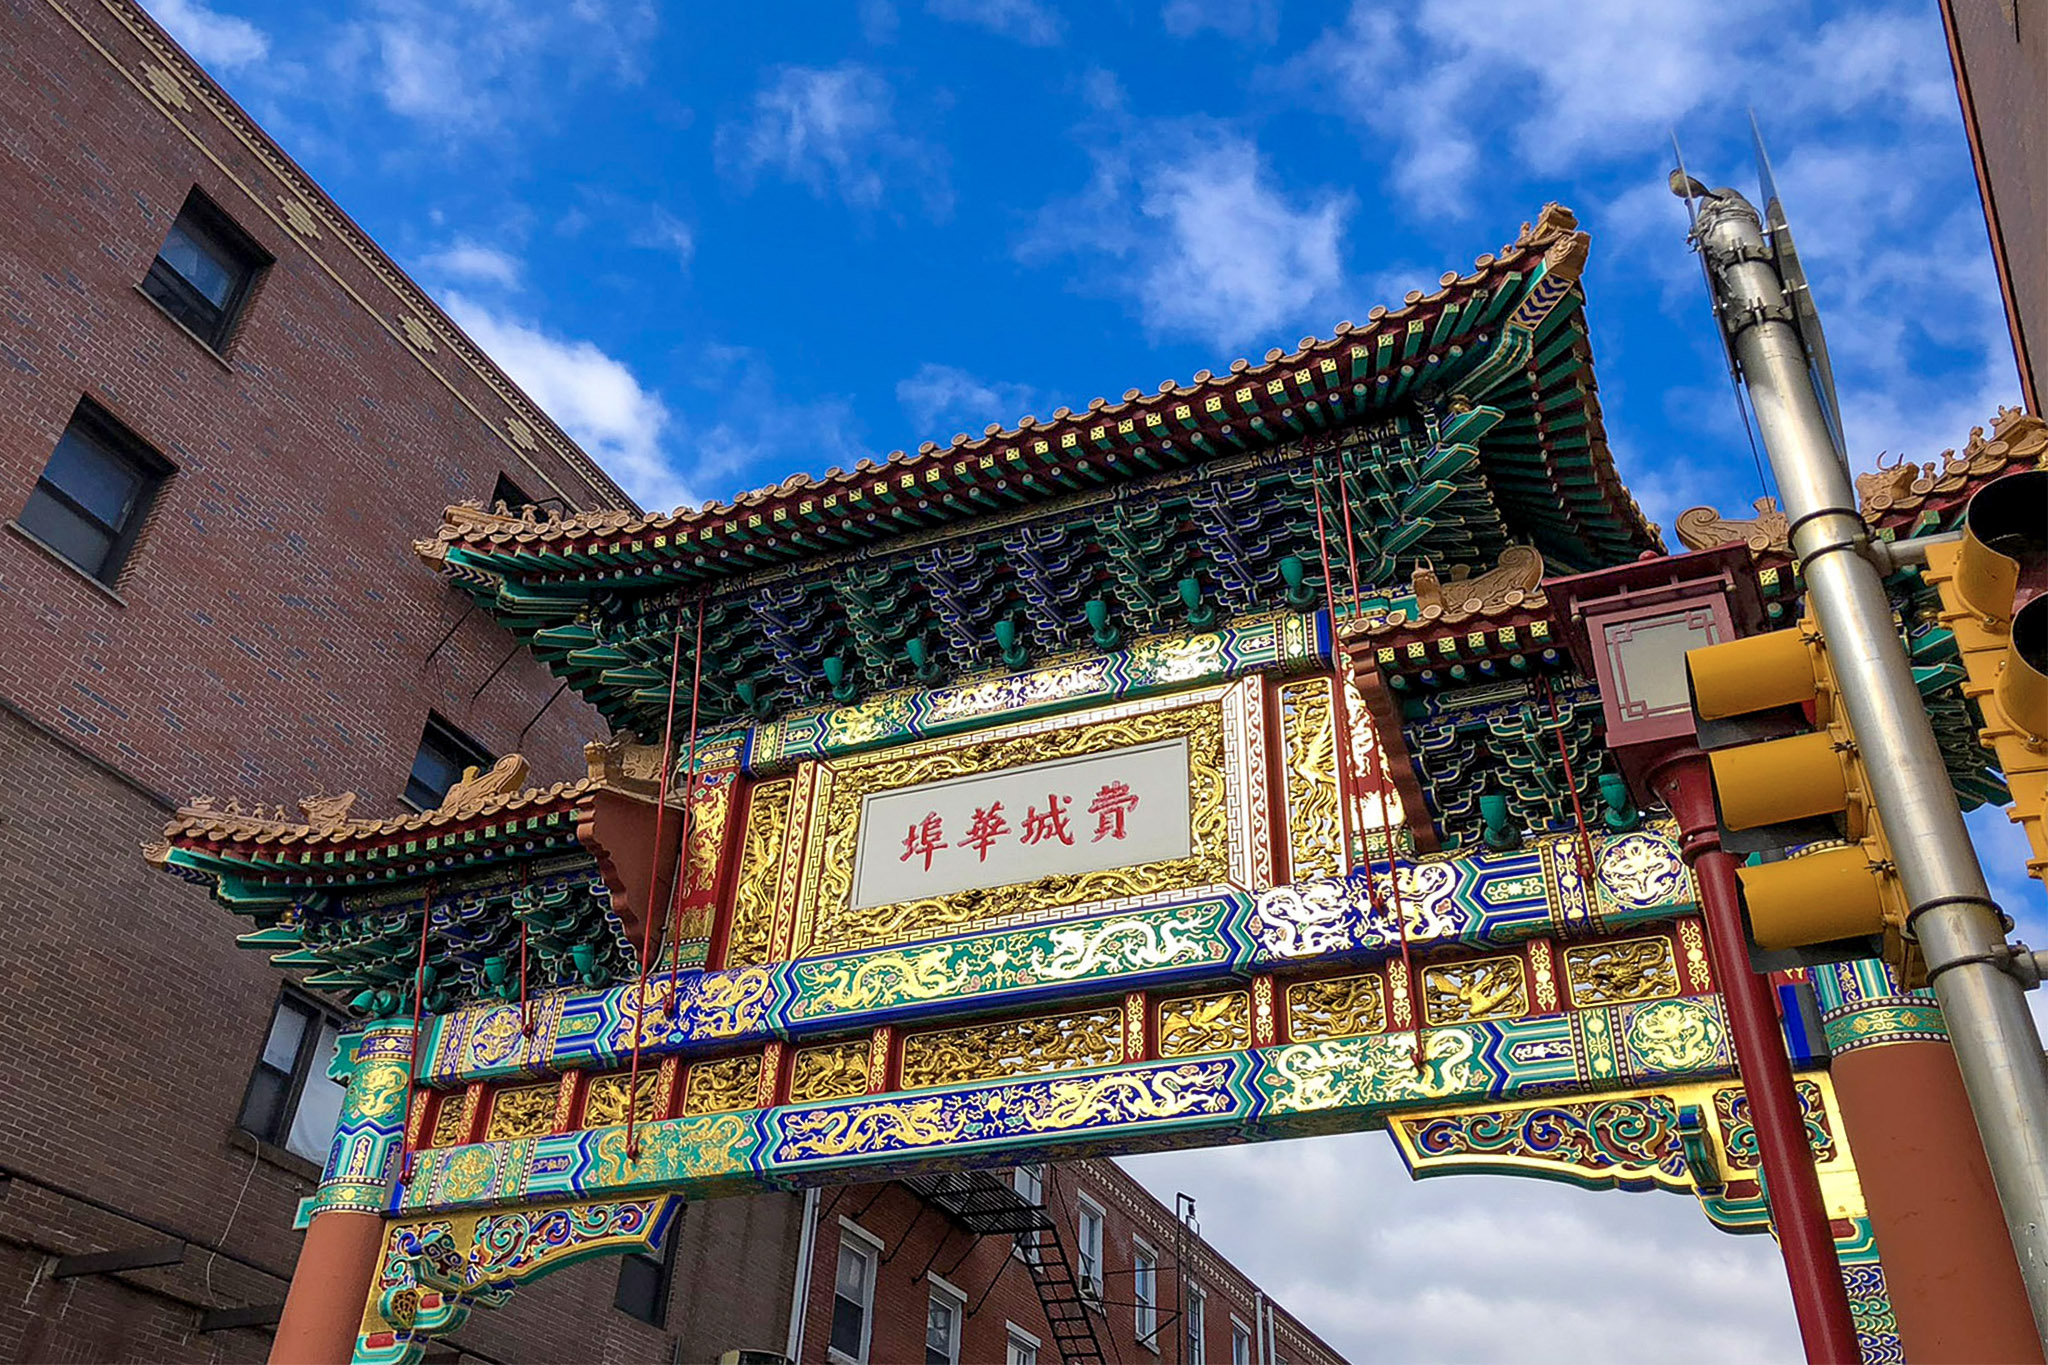 Philly Chinatown faces slowdown after coronavirus scare - WHYY